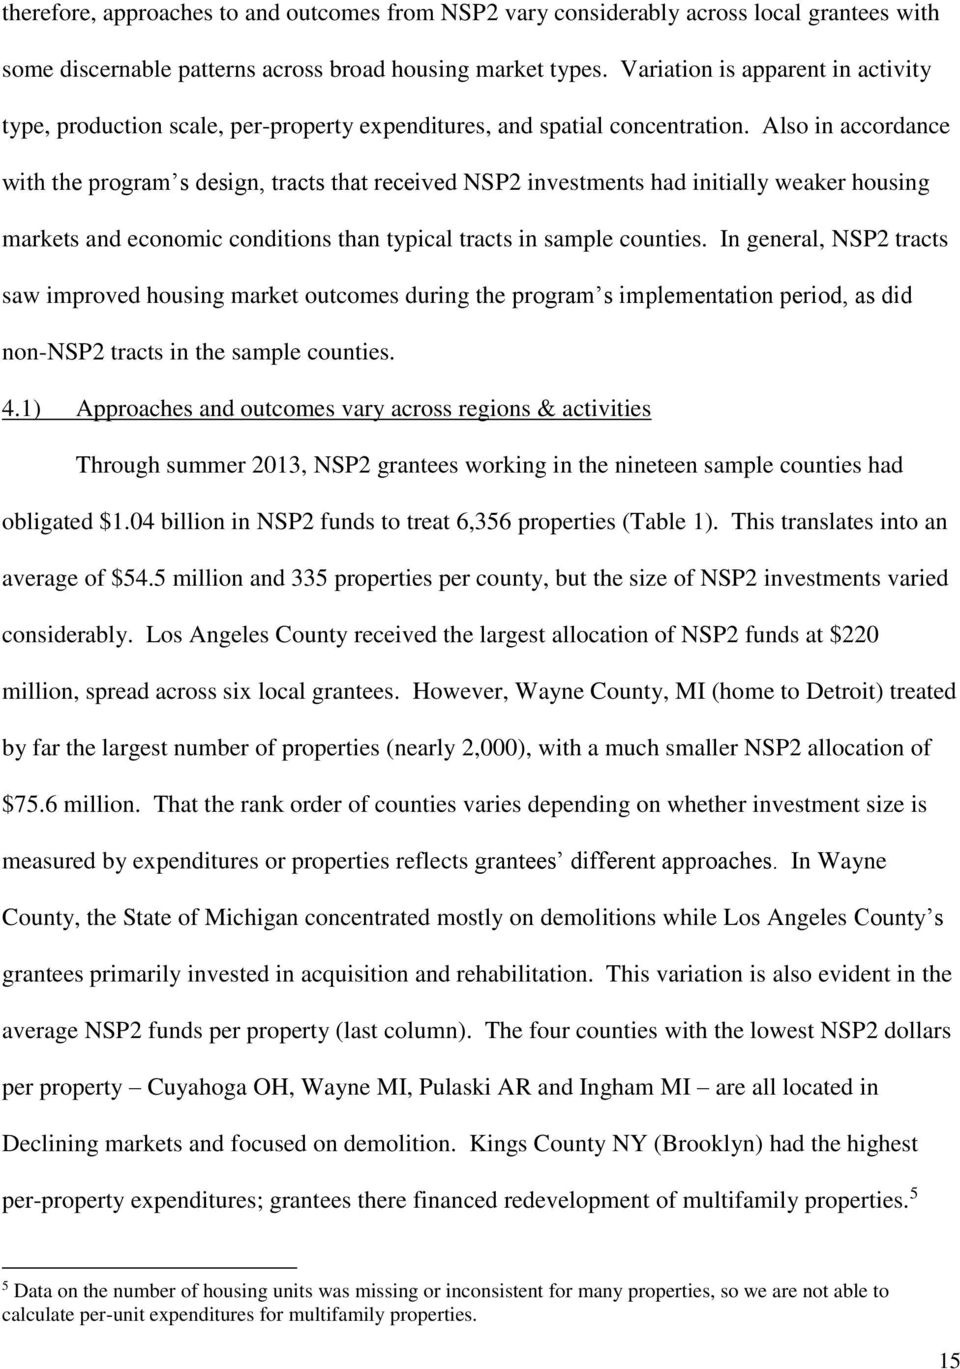 Also in accordance with the program s design, tracts that received NSP2 investments had initially weaker housing markets and economic conditions than typical tracts in sample counties.